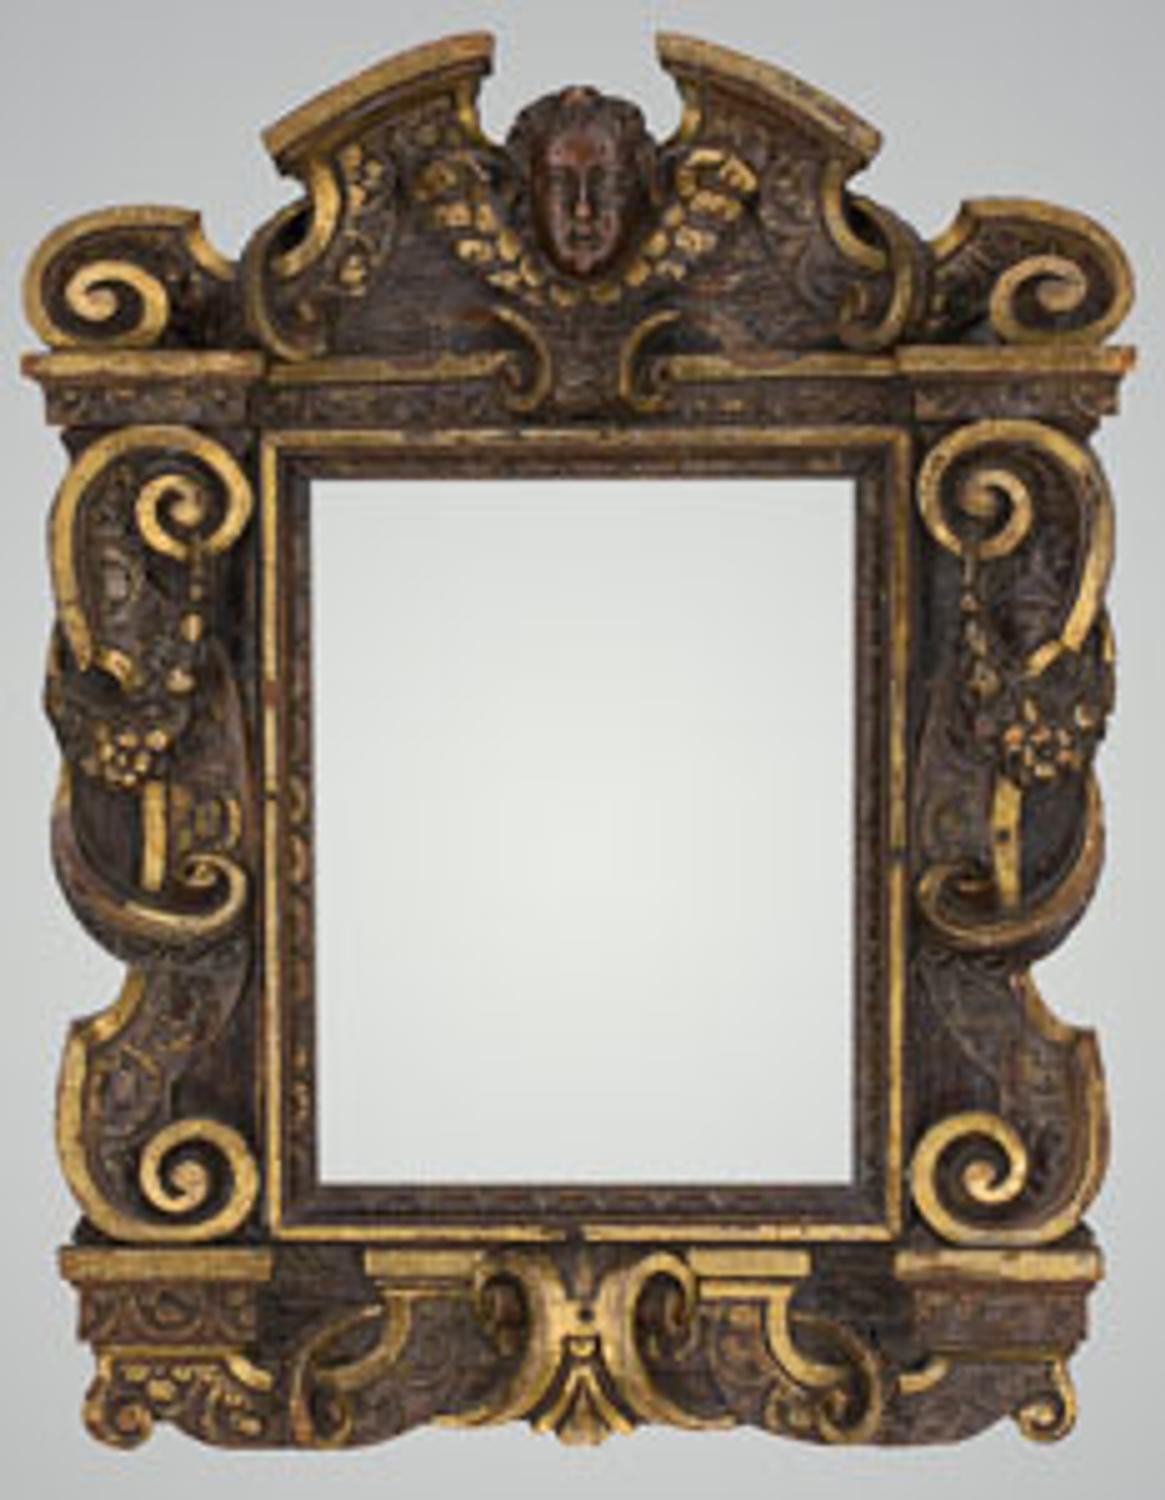 Glasses Frame History : Lowy Frames Brings History of Framing to The Curators Eye ...